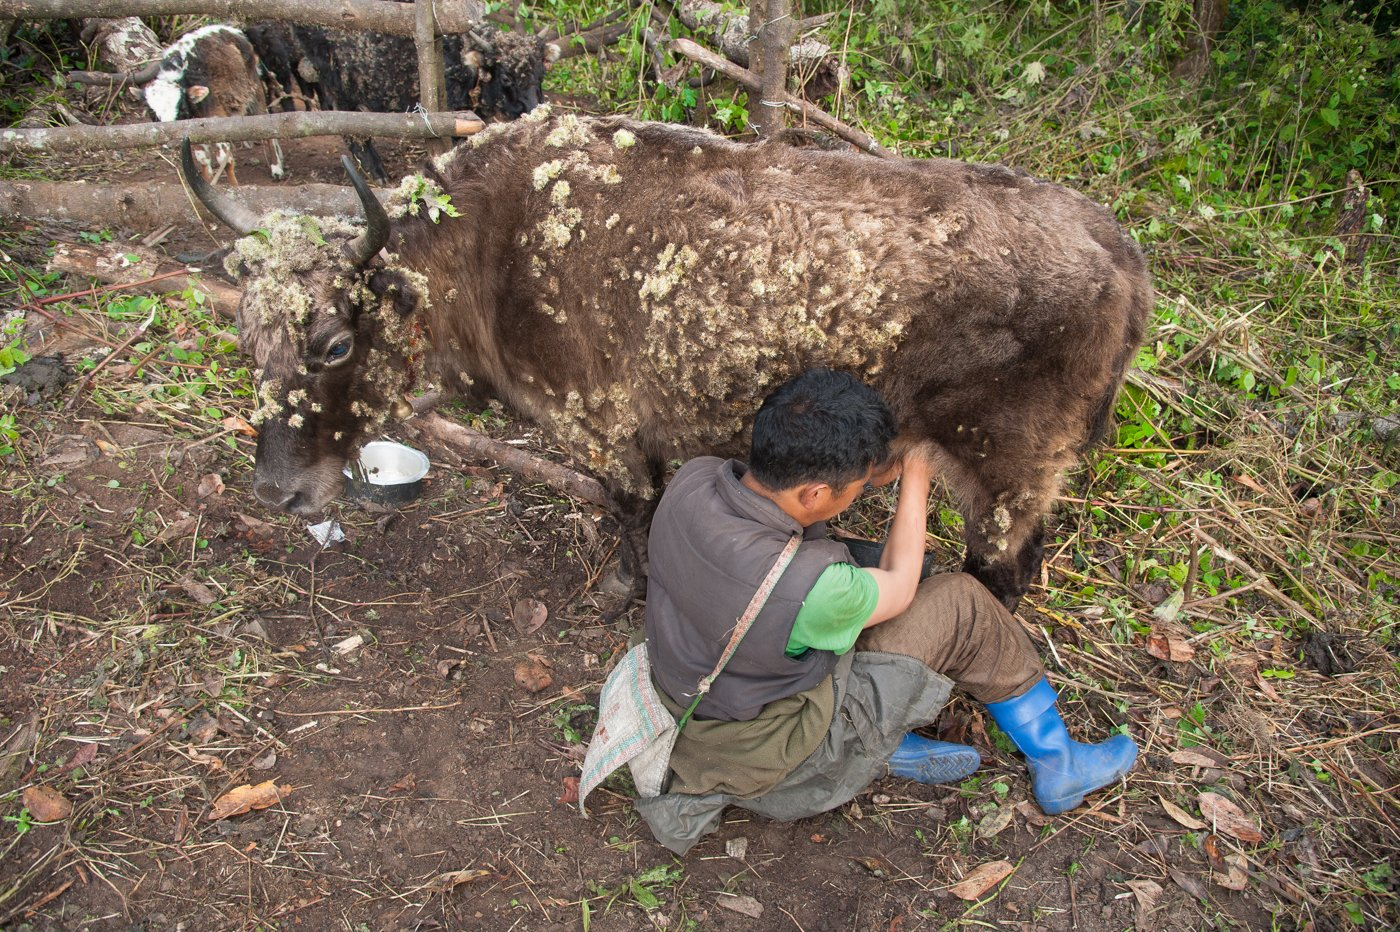 Pem Tsering milking a yak in a high altitude forest in West Kameng district. These animals are actually a hybrid of yaks and other species of cattle, and are called dzo. The Brokpa milk them twice a day. Credit; Ritayan Mukherjee